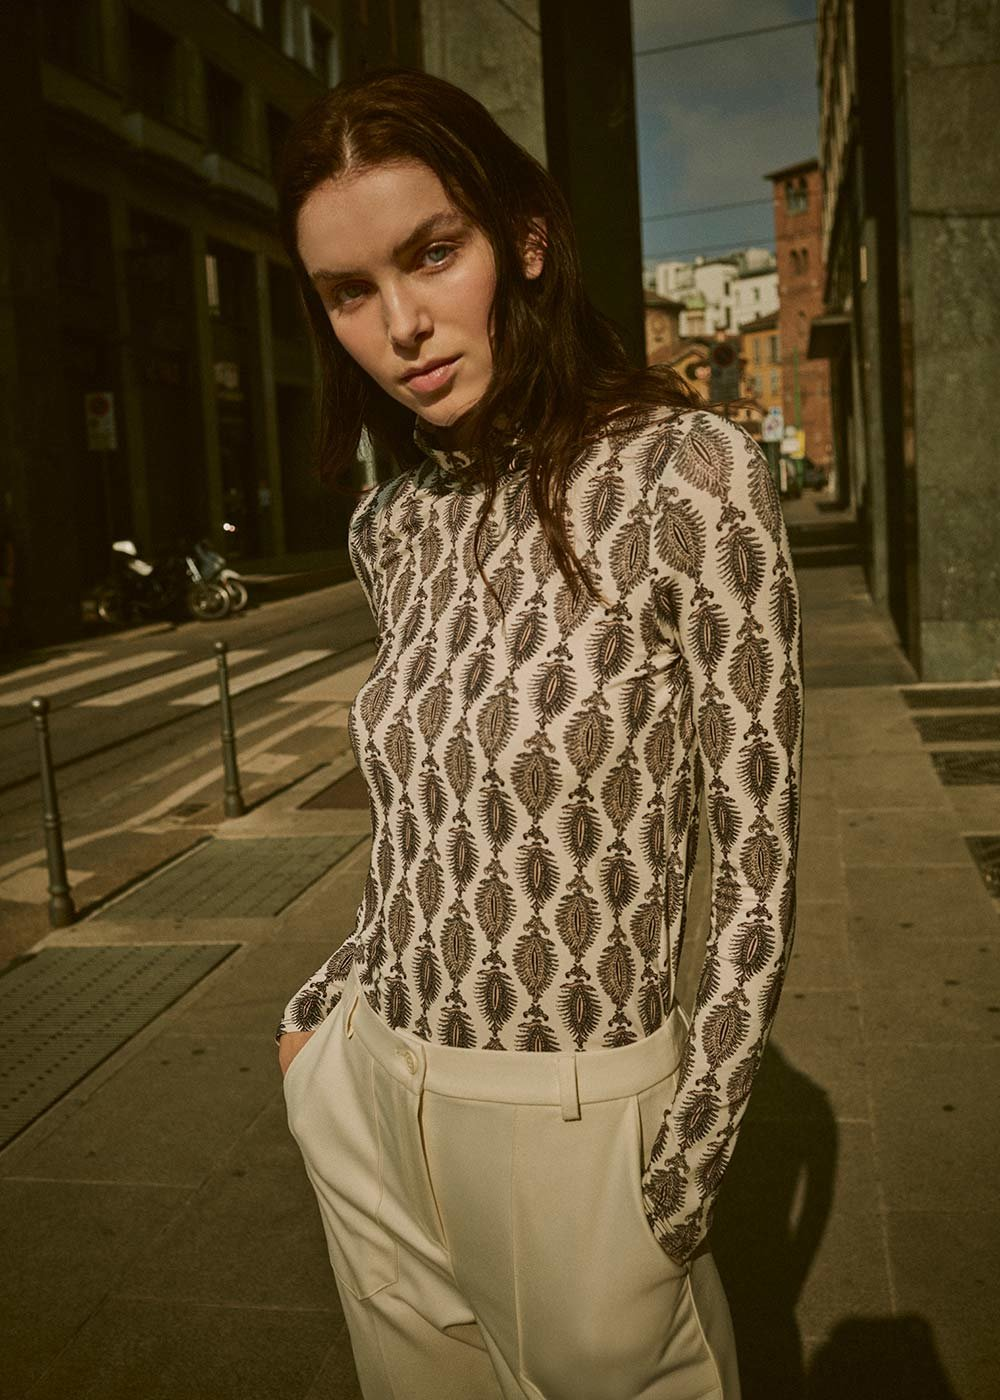 Stella high-necked patterned t-shirt - White /  Taupe Fantasia - Woman